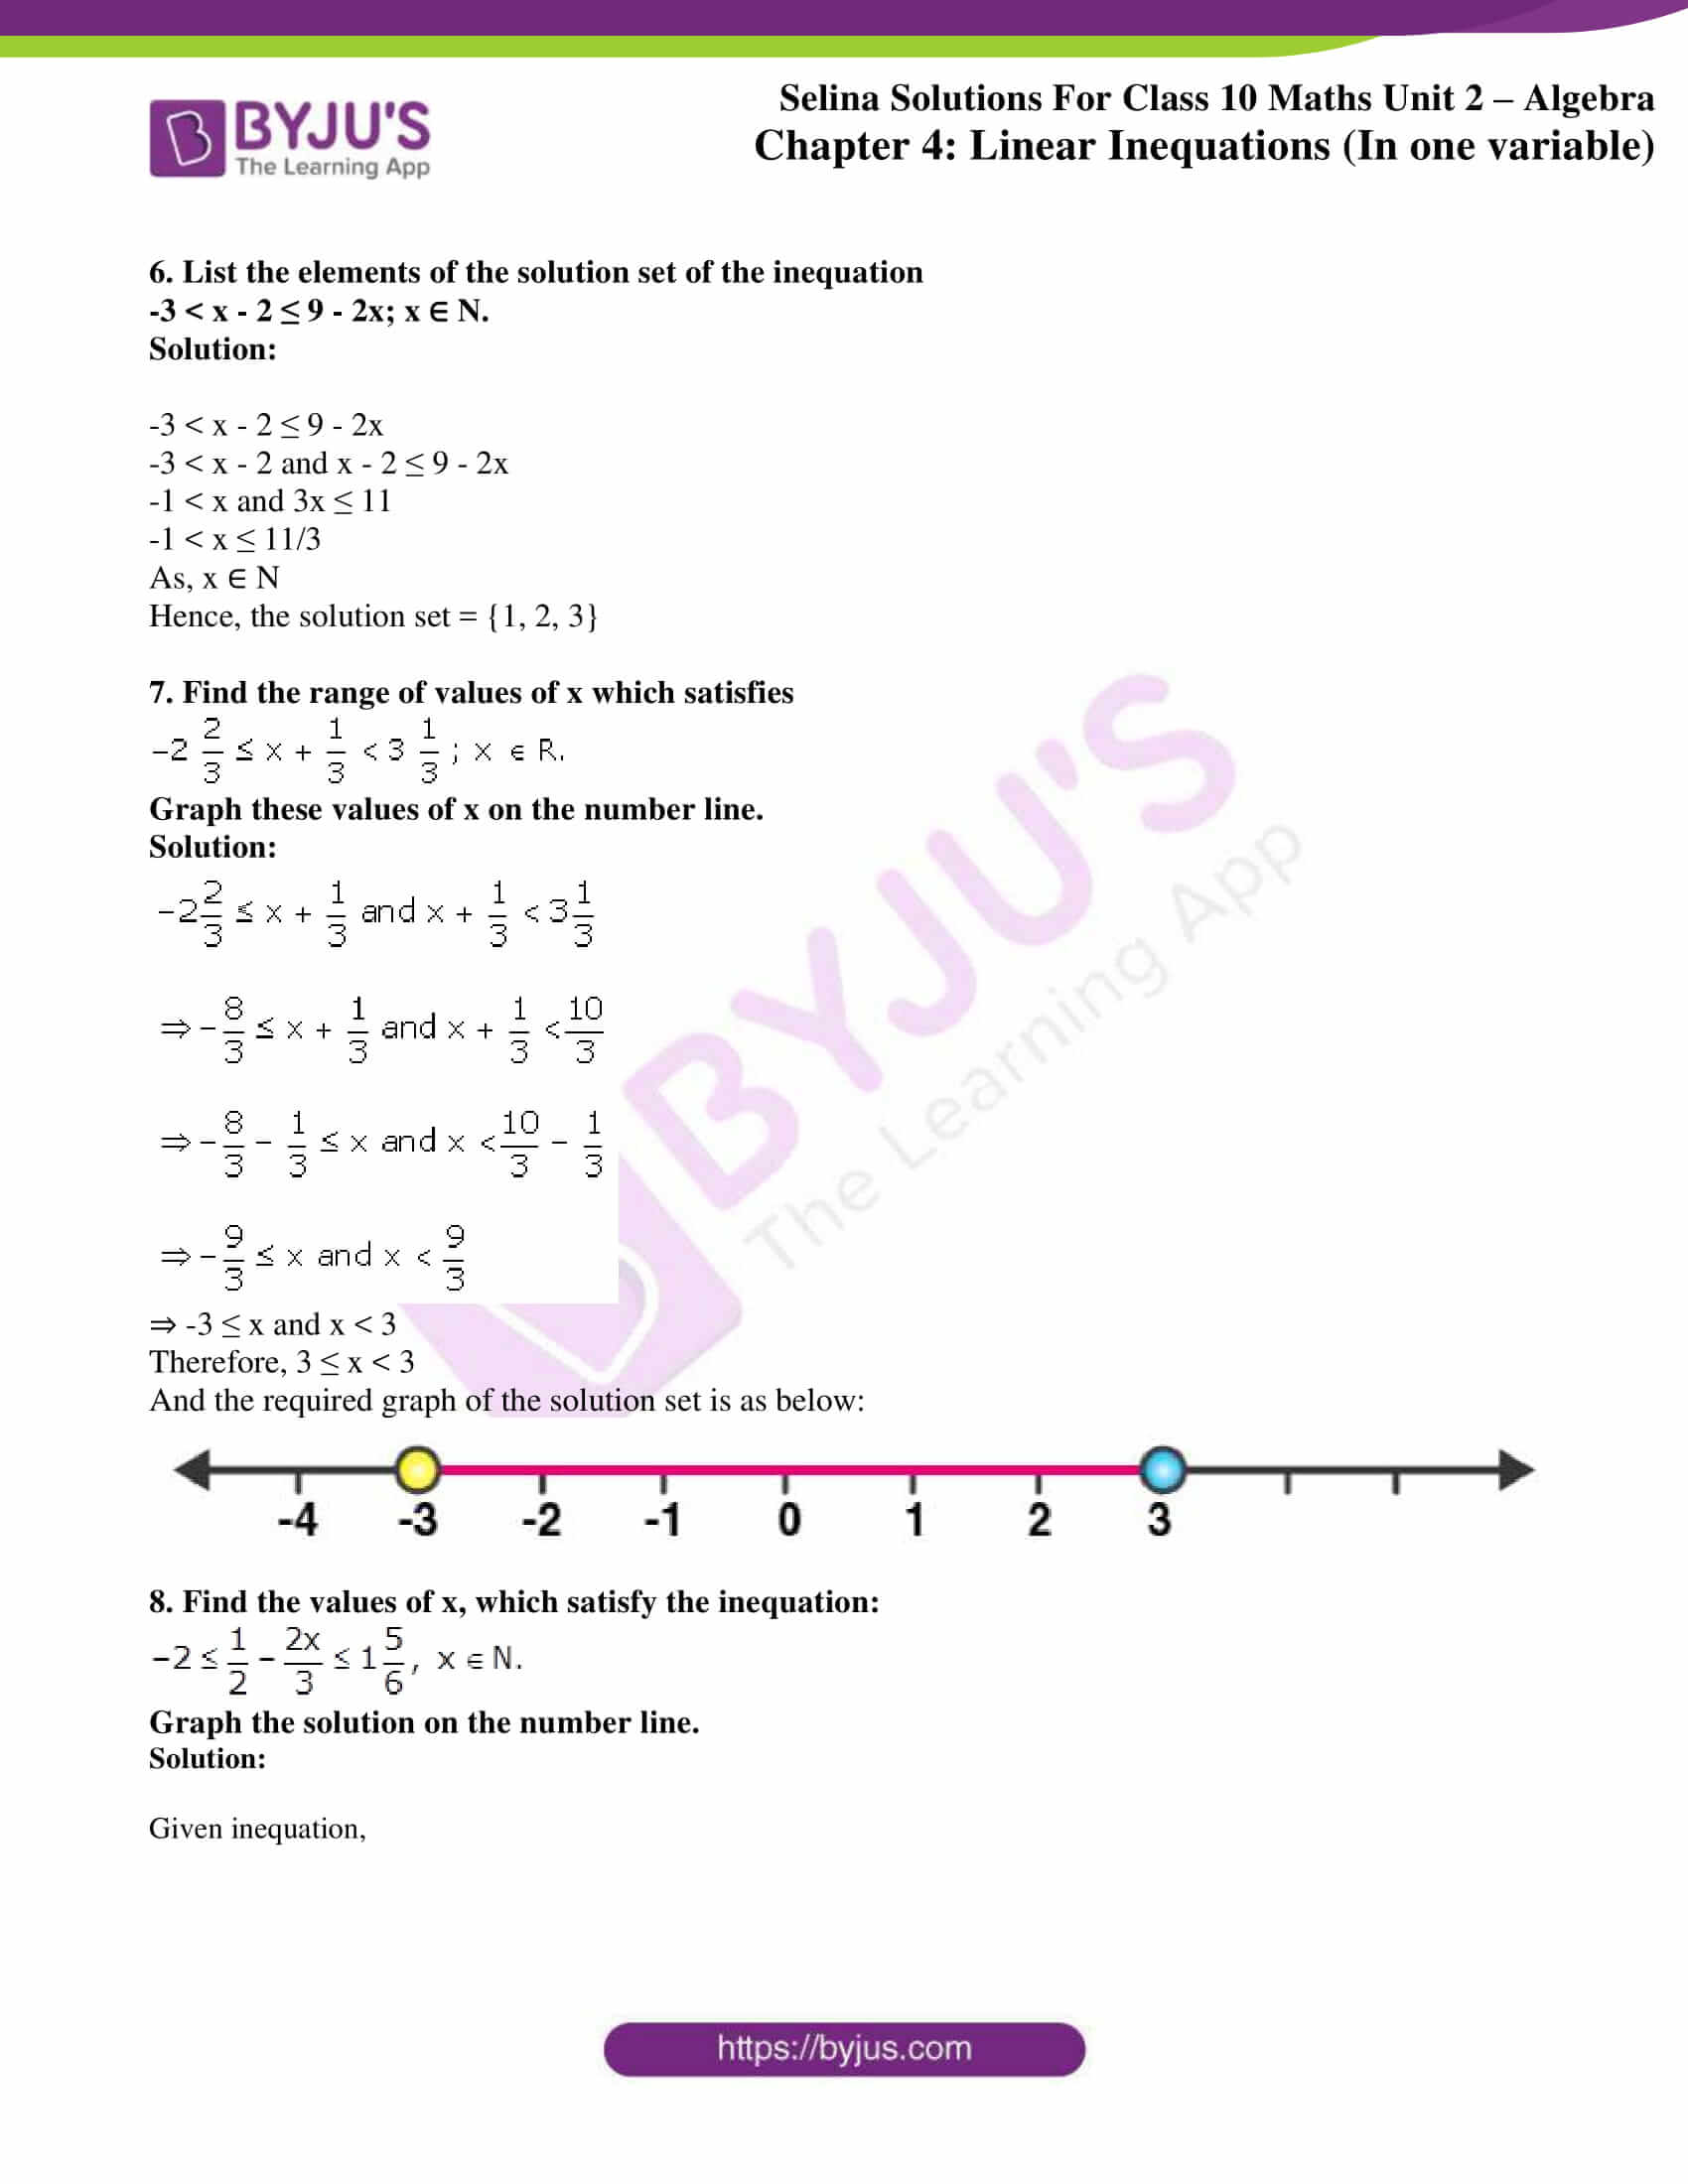 selina solution concise maths class 10 chapter 4b